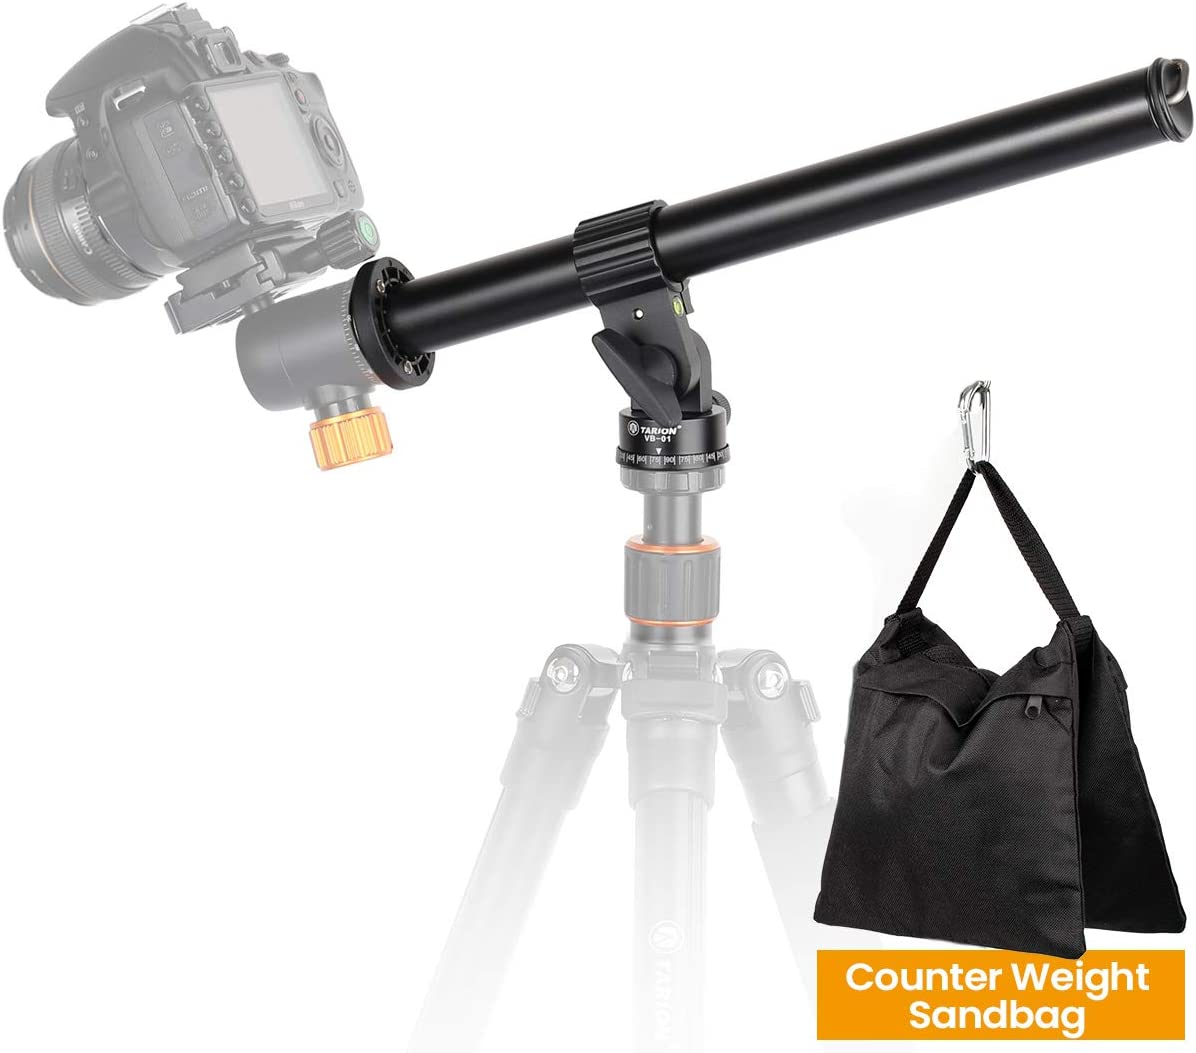 "TARION Tripod Extension Arm Horizontal Centre Column Boom 12.6"" Extender 360° Rotatable Aluminum Alloy Swivel Lock with Counterweight Sandbag for Overhead Photography and Filming"